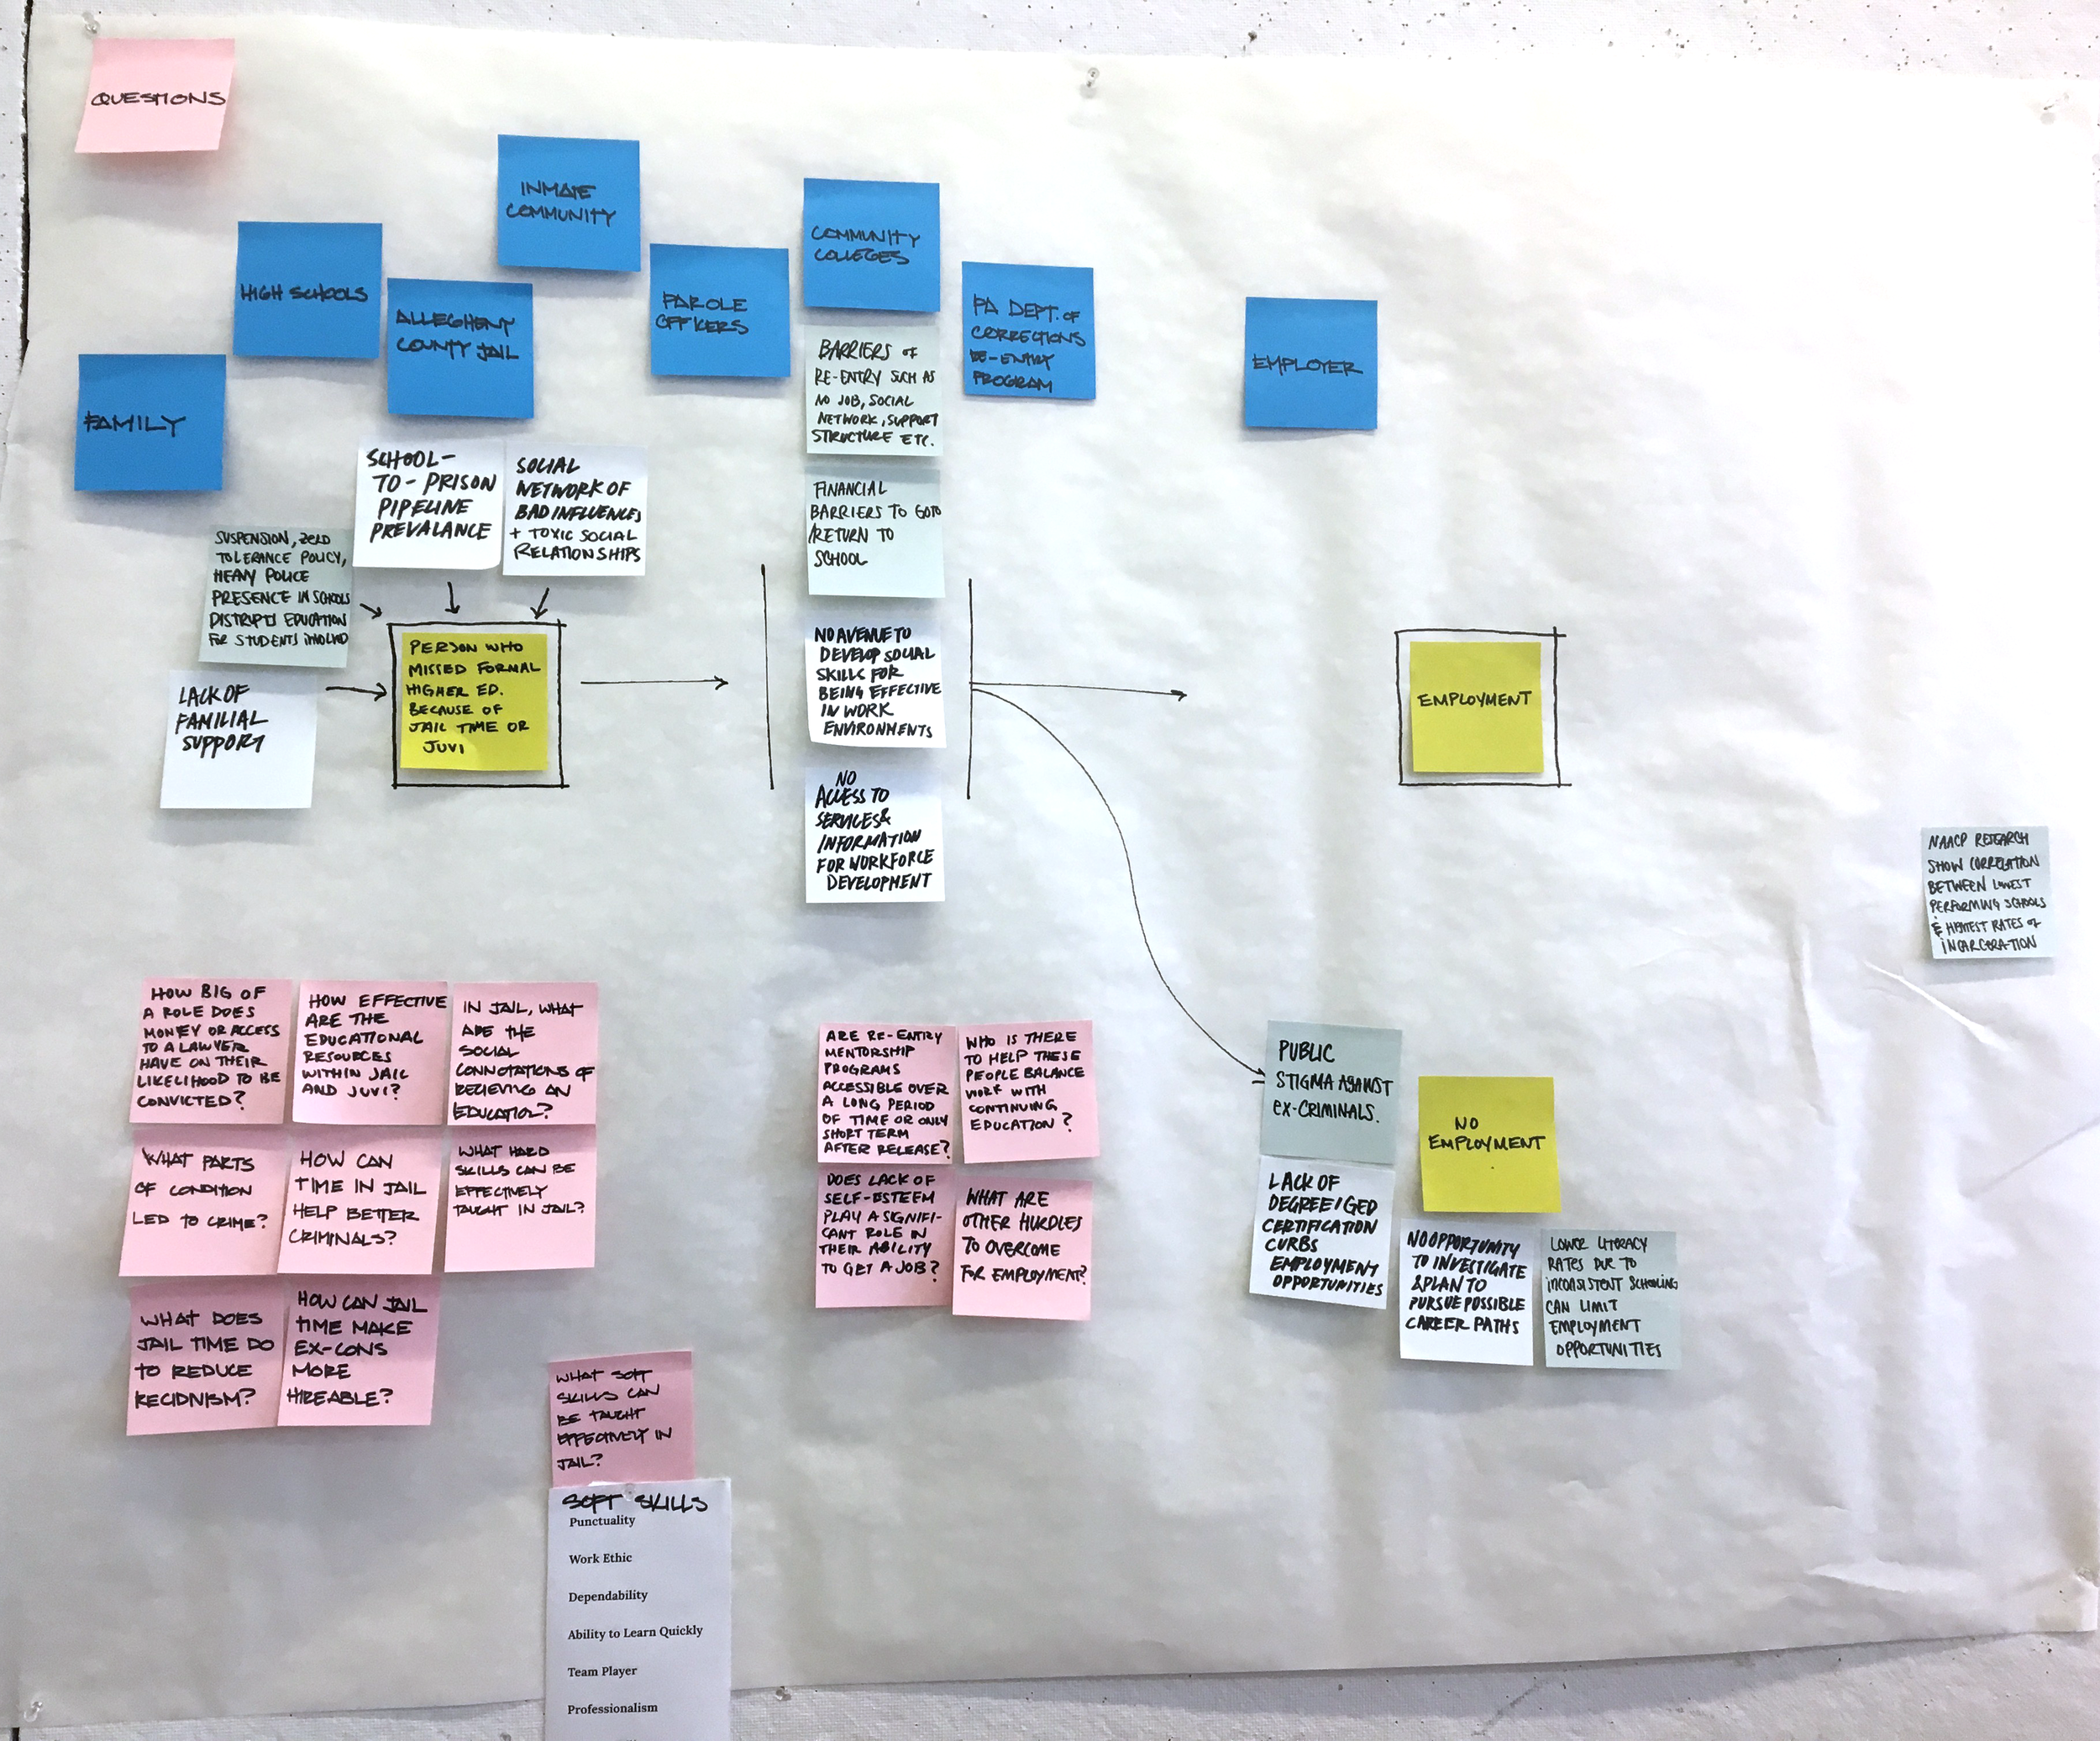 Mapping flow from juvi to job.png